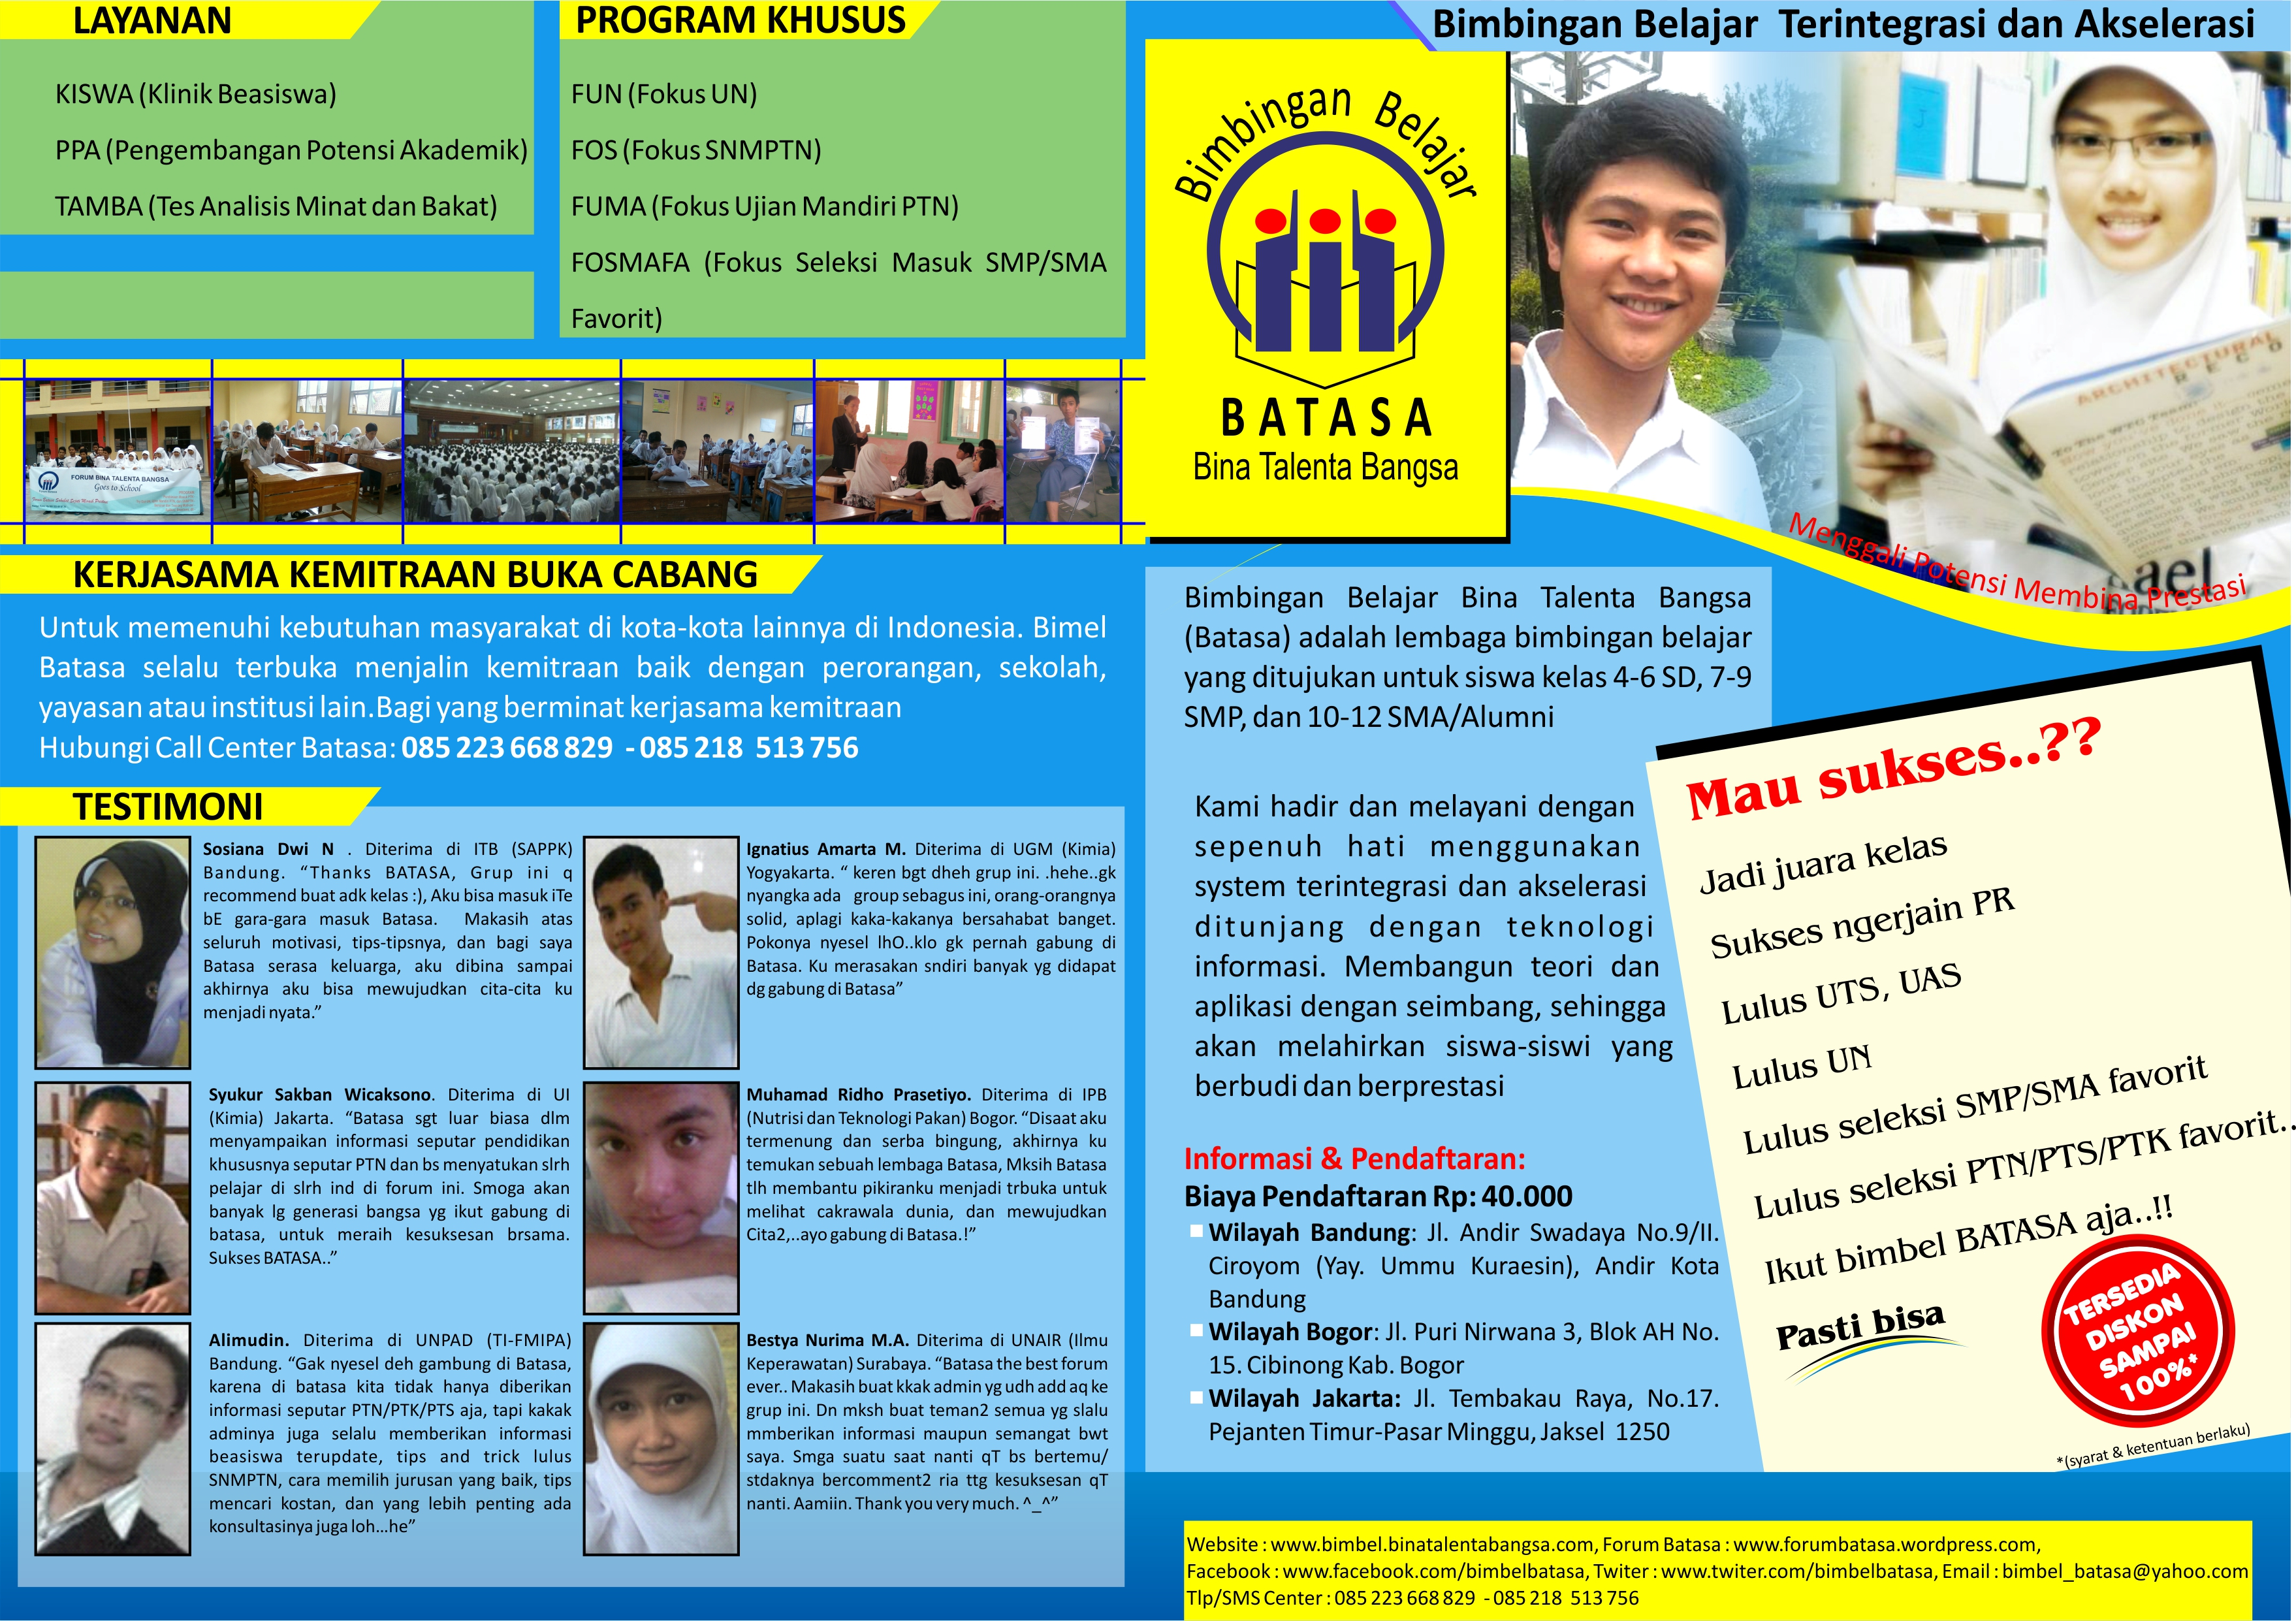 Official Website Imama Unpad Ikatan Mahasiswa Dan